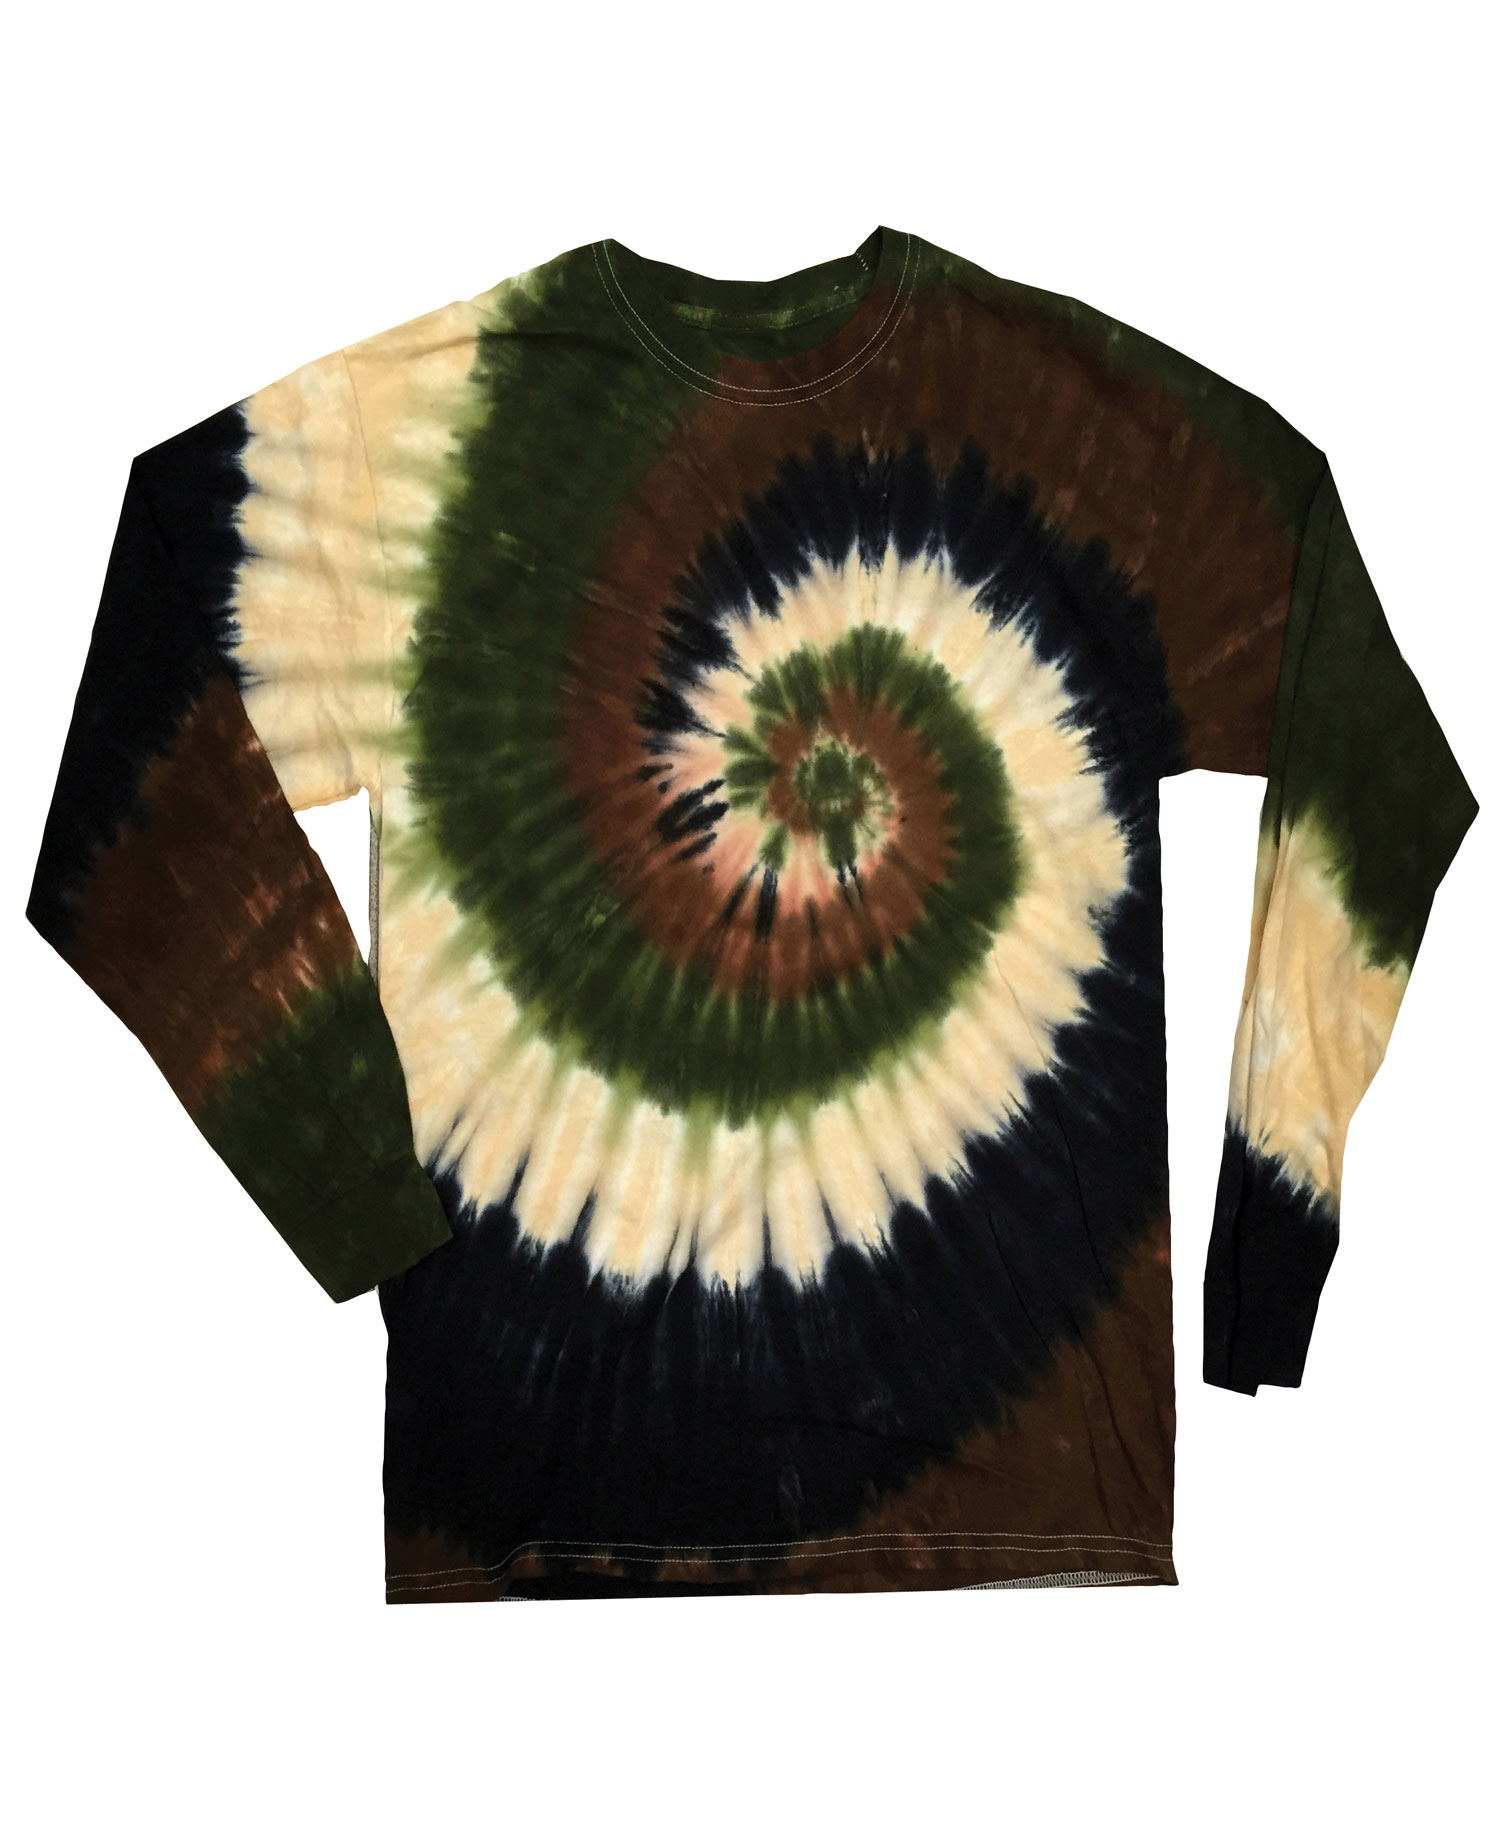 Colortone - T302P Camo Swirl Long Sleeve